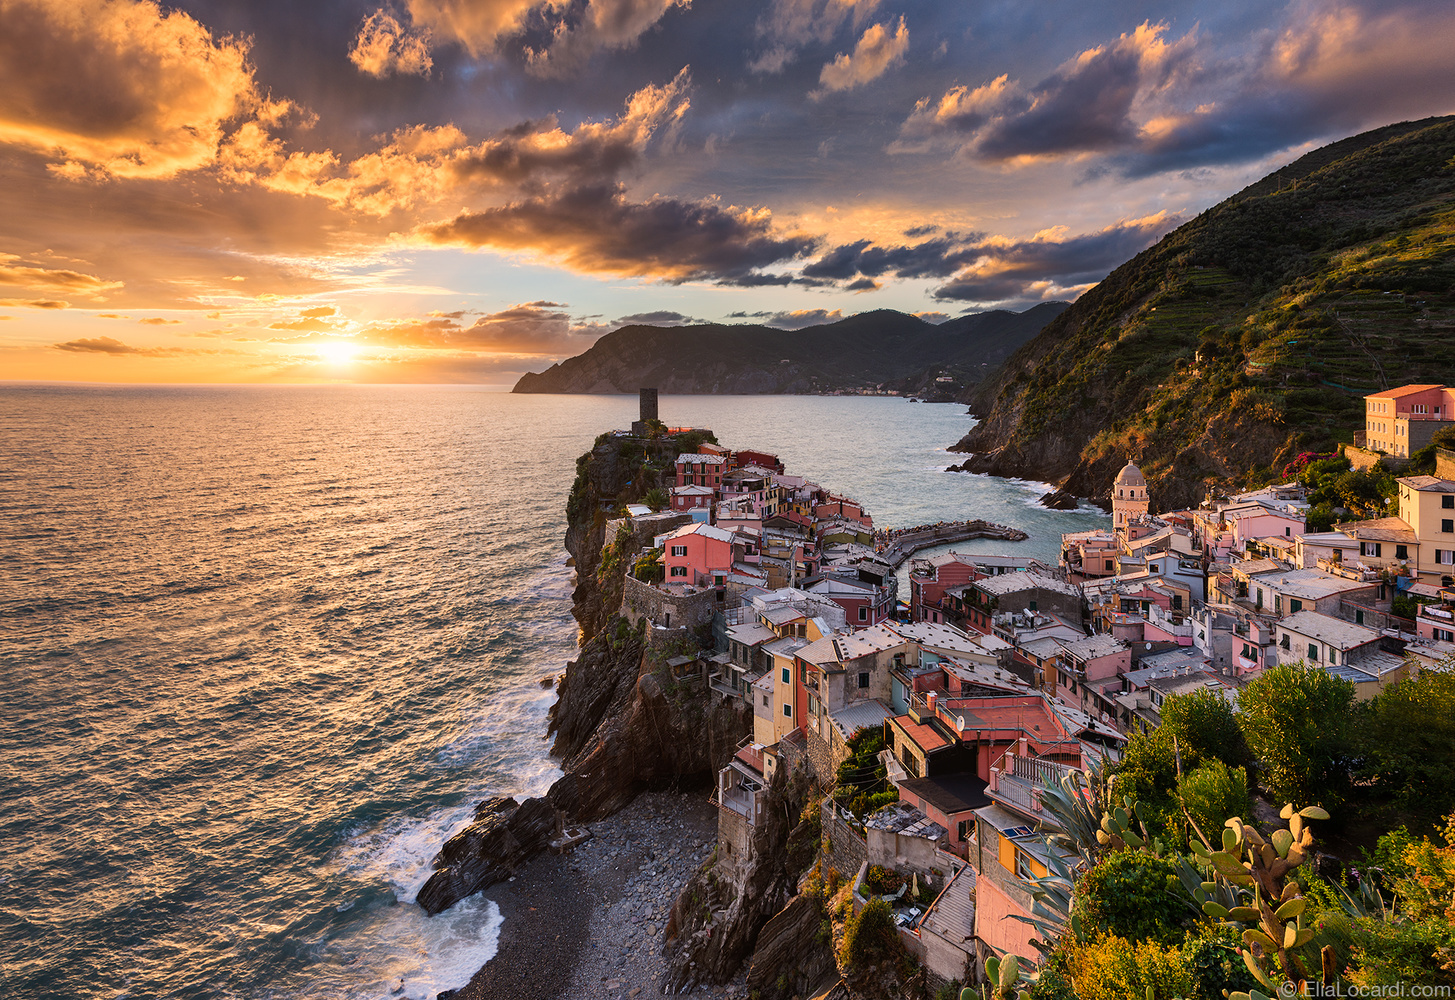 Song of the Sea - Vernazza Italy - Photography by Elia Locardi